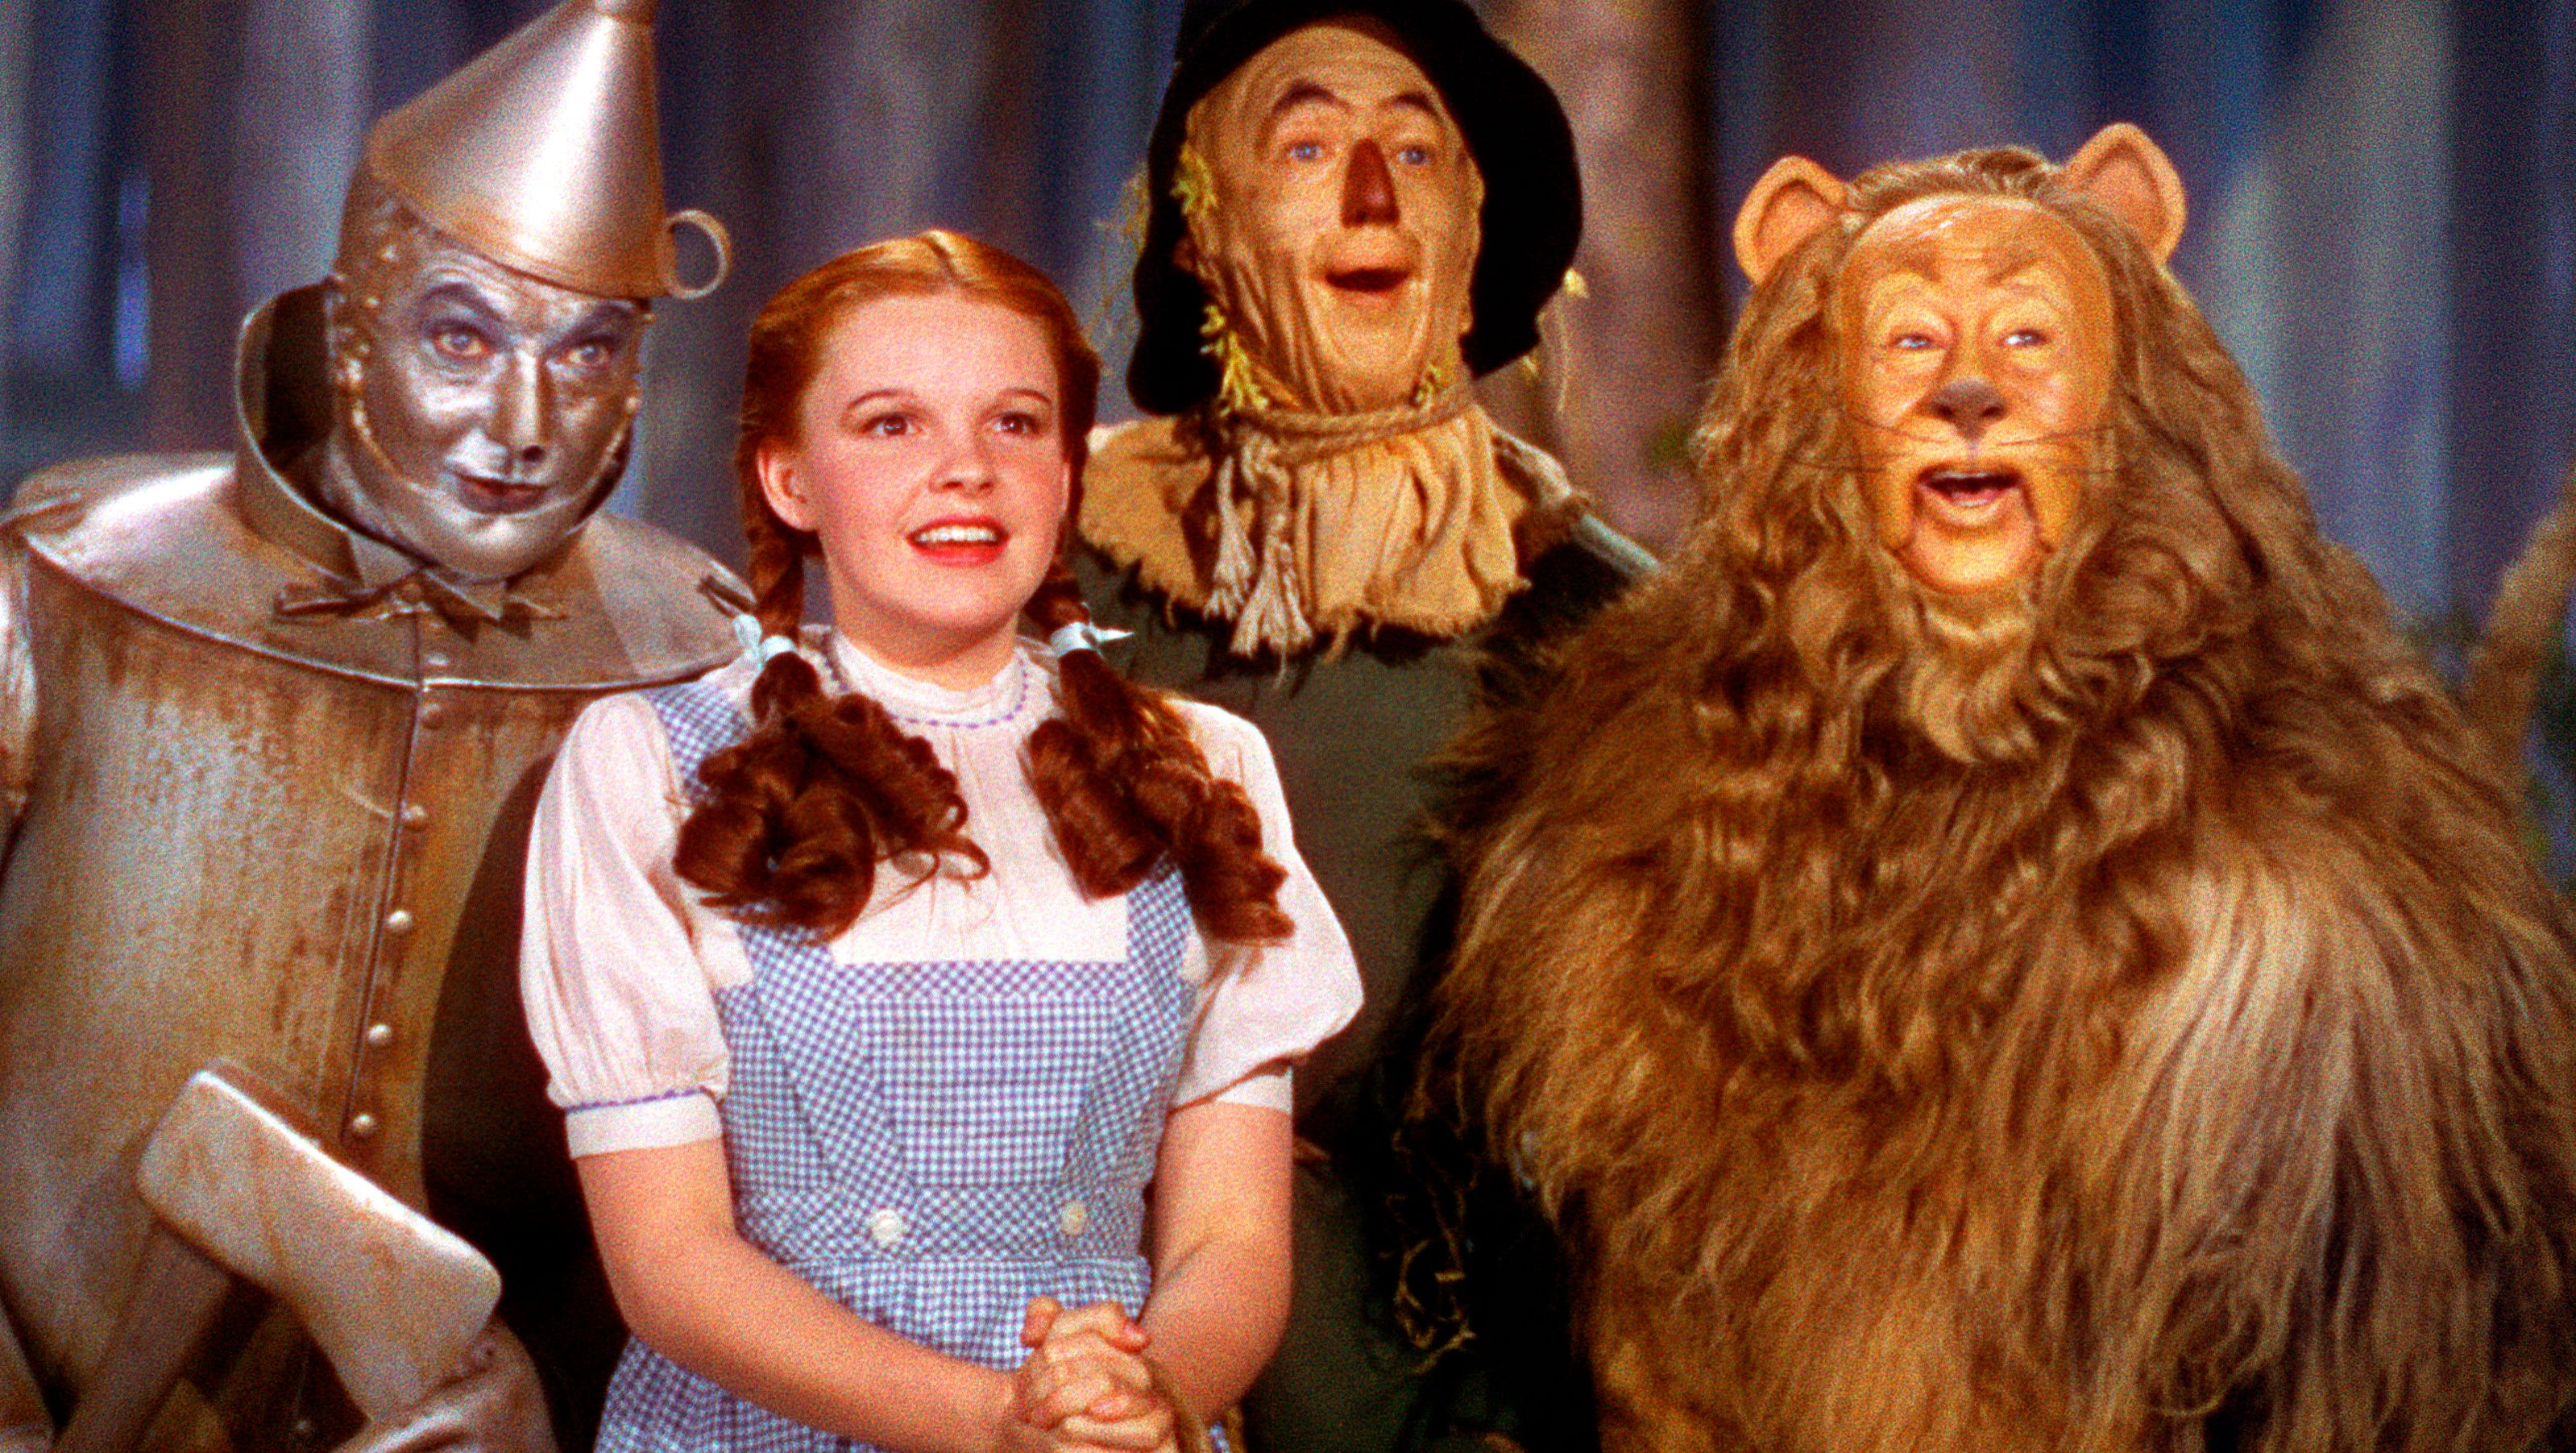 wizard of oz cinema The wizard of oz 1:30pm buy tickets the wizard of oz this magical  cinematic event finds kansas farm girl judy garland caught in a tornado and.